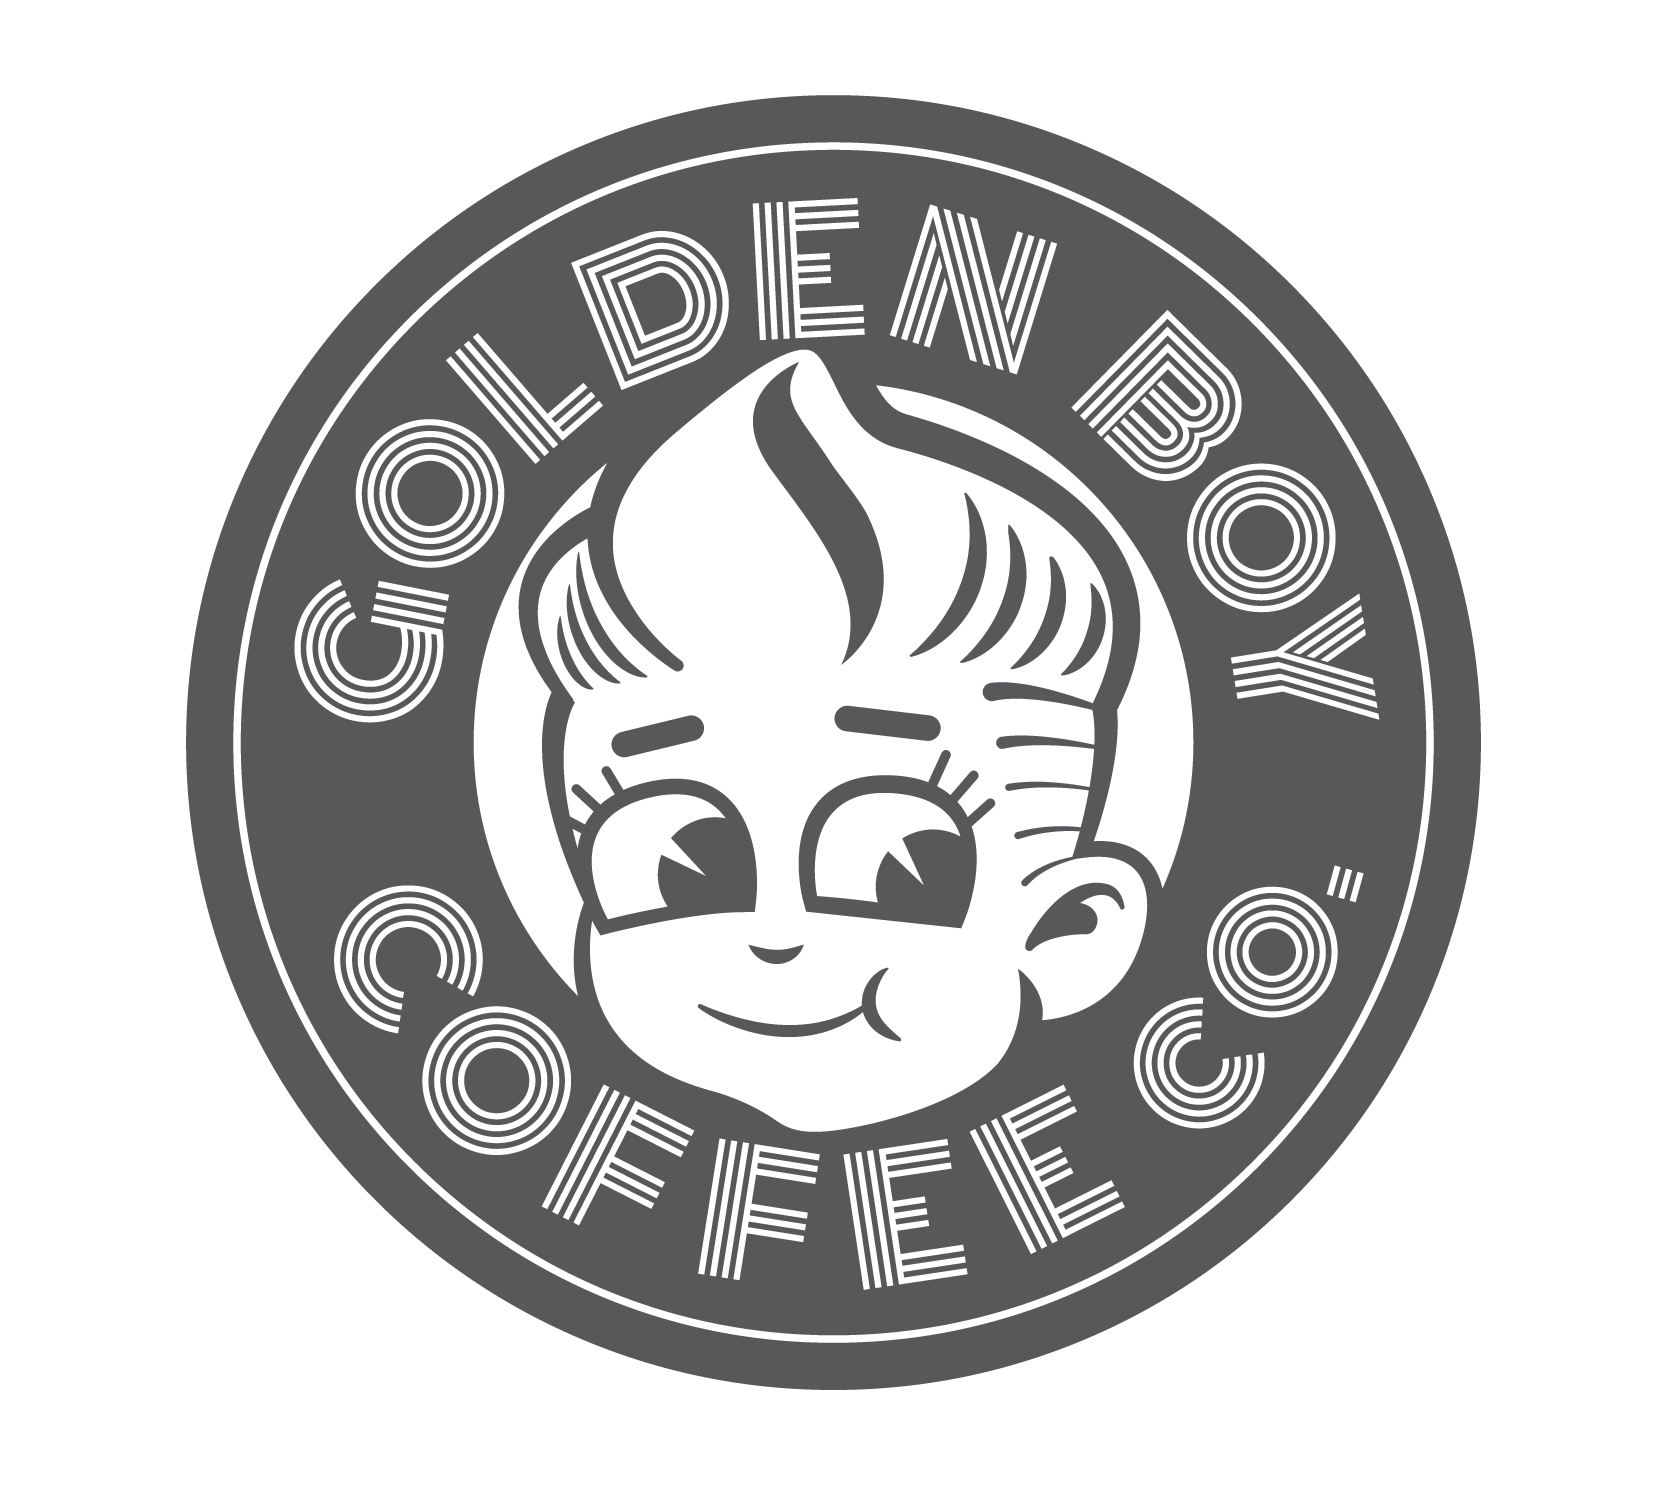 Logos_Golden Boy_Inverse.png